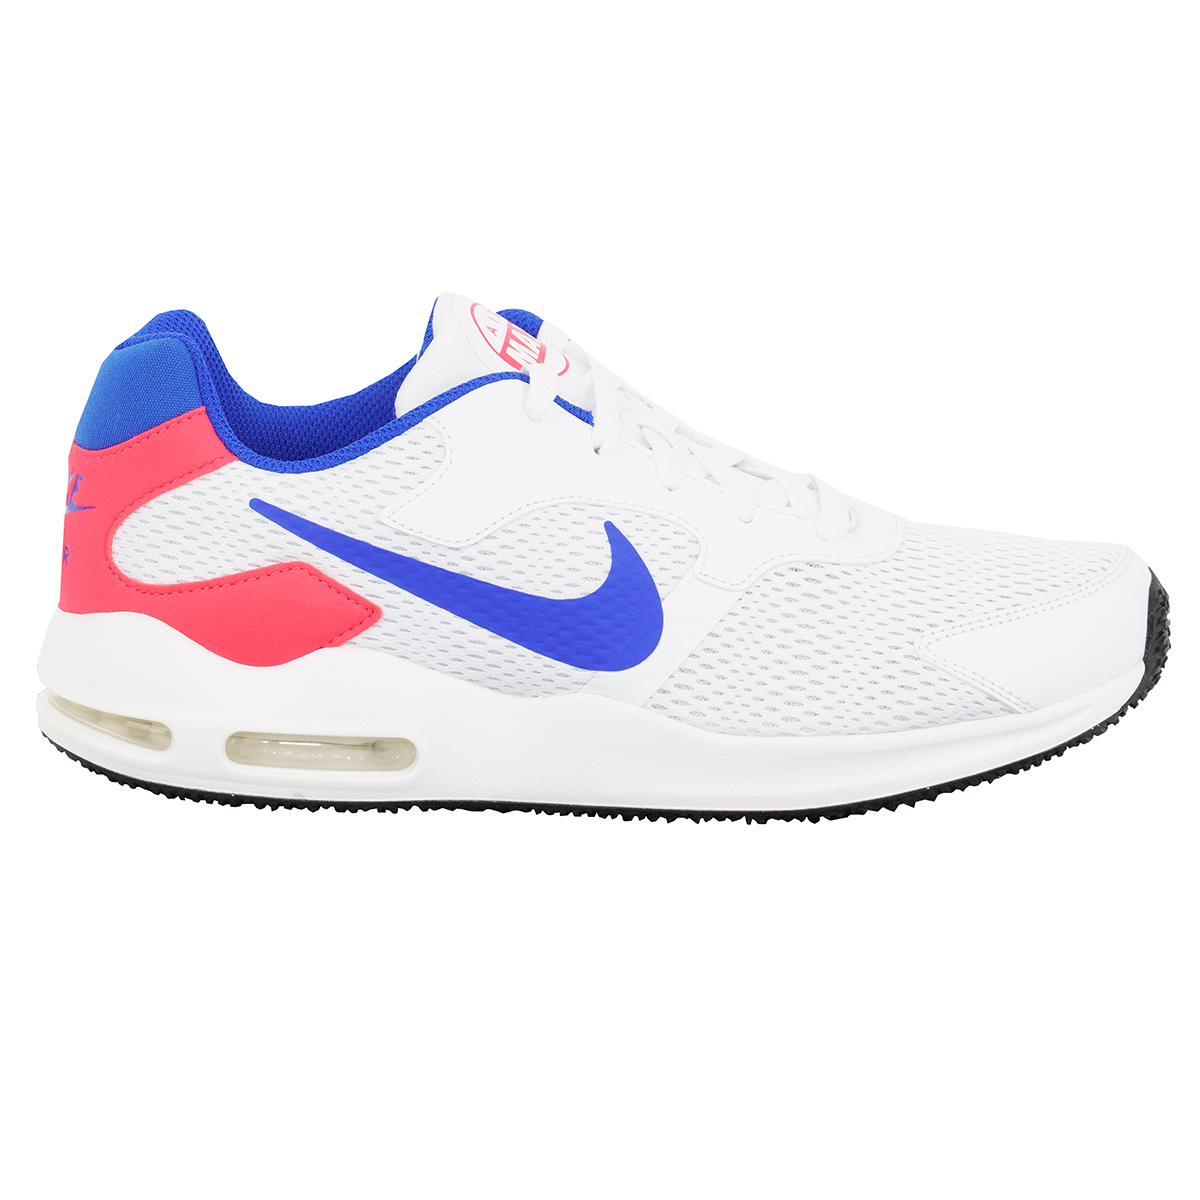 947ef785e8b2d Details about Nike Men's Air Max Guile Running Shoes  White/Ultramarine/Solar Red 8.5